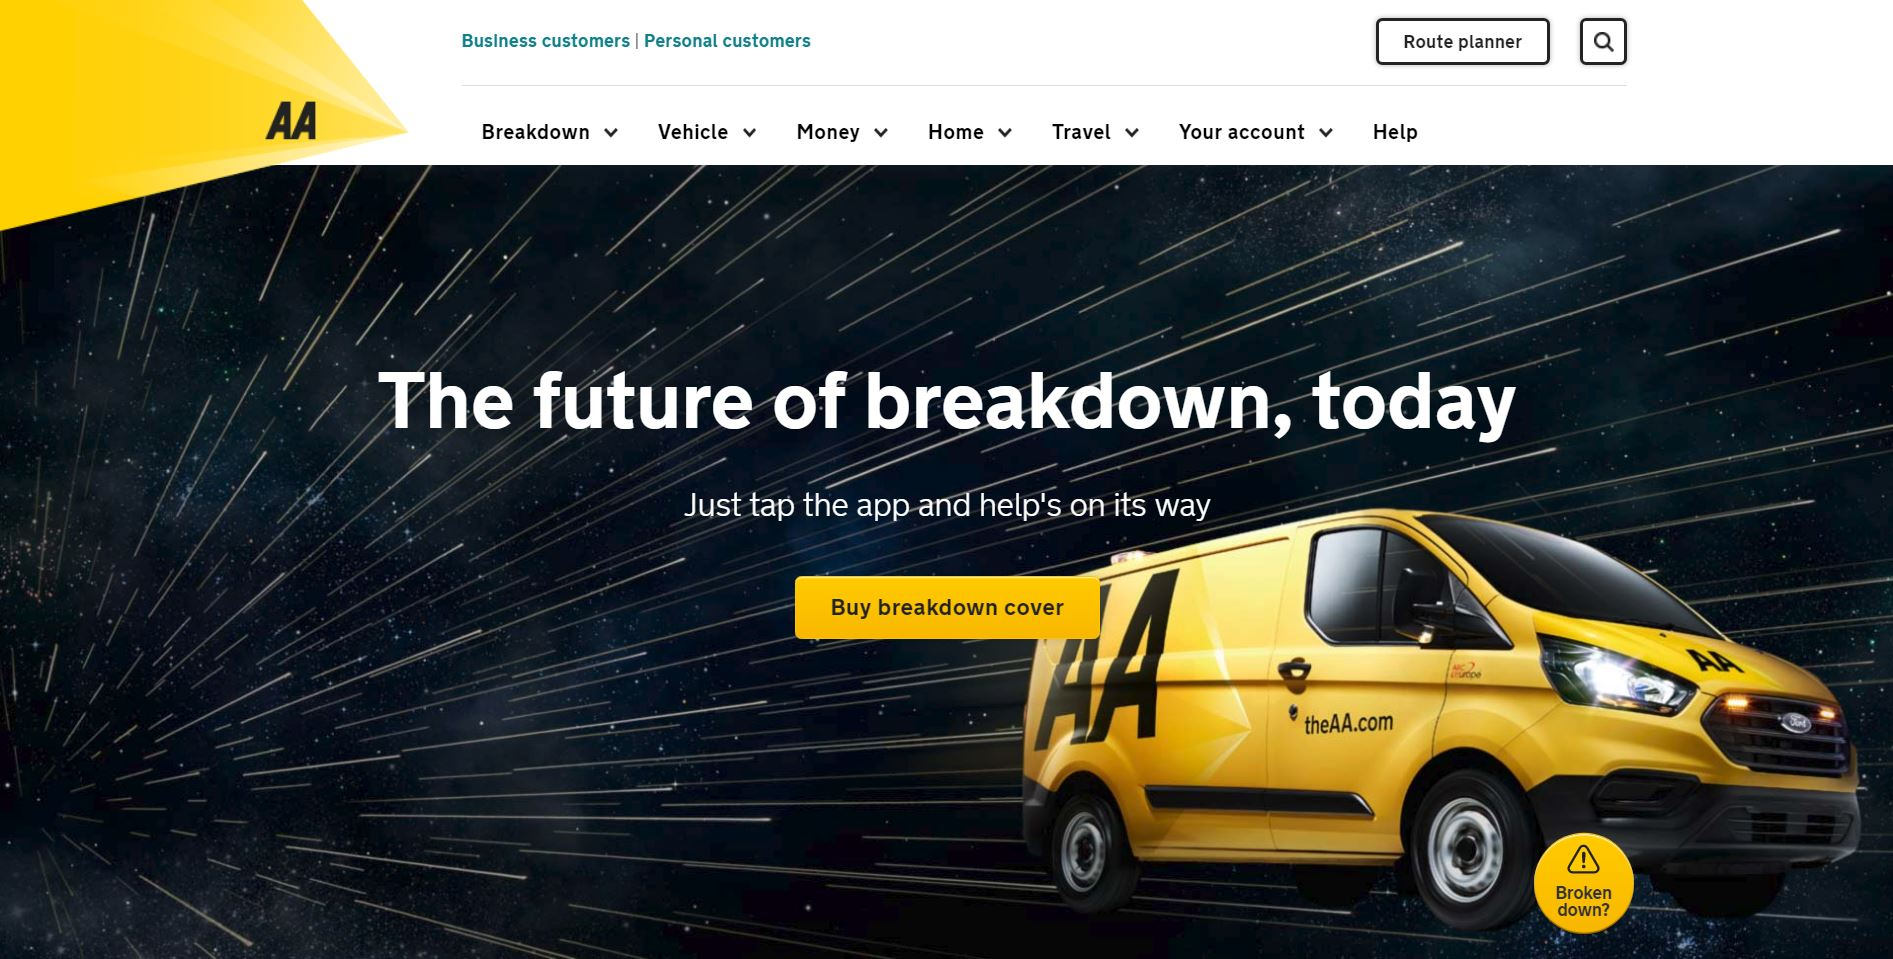 The AA's home page on website